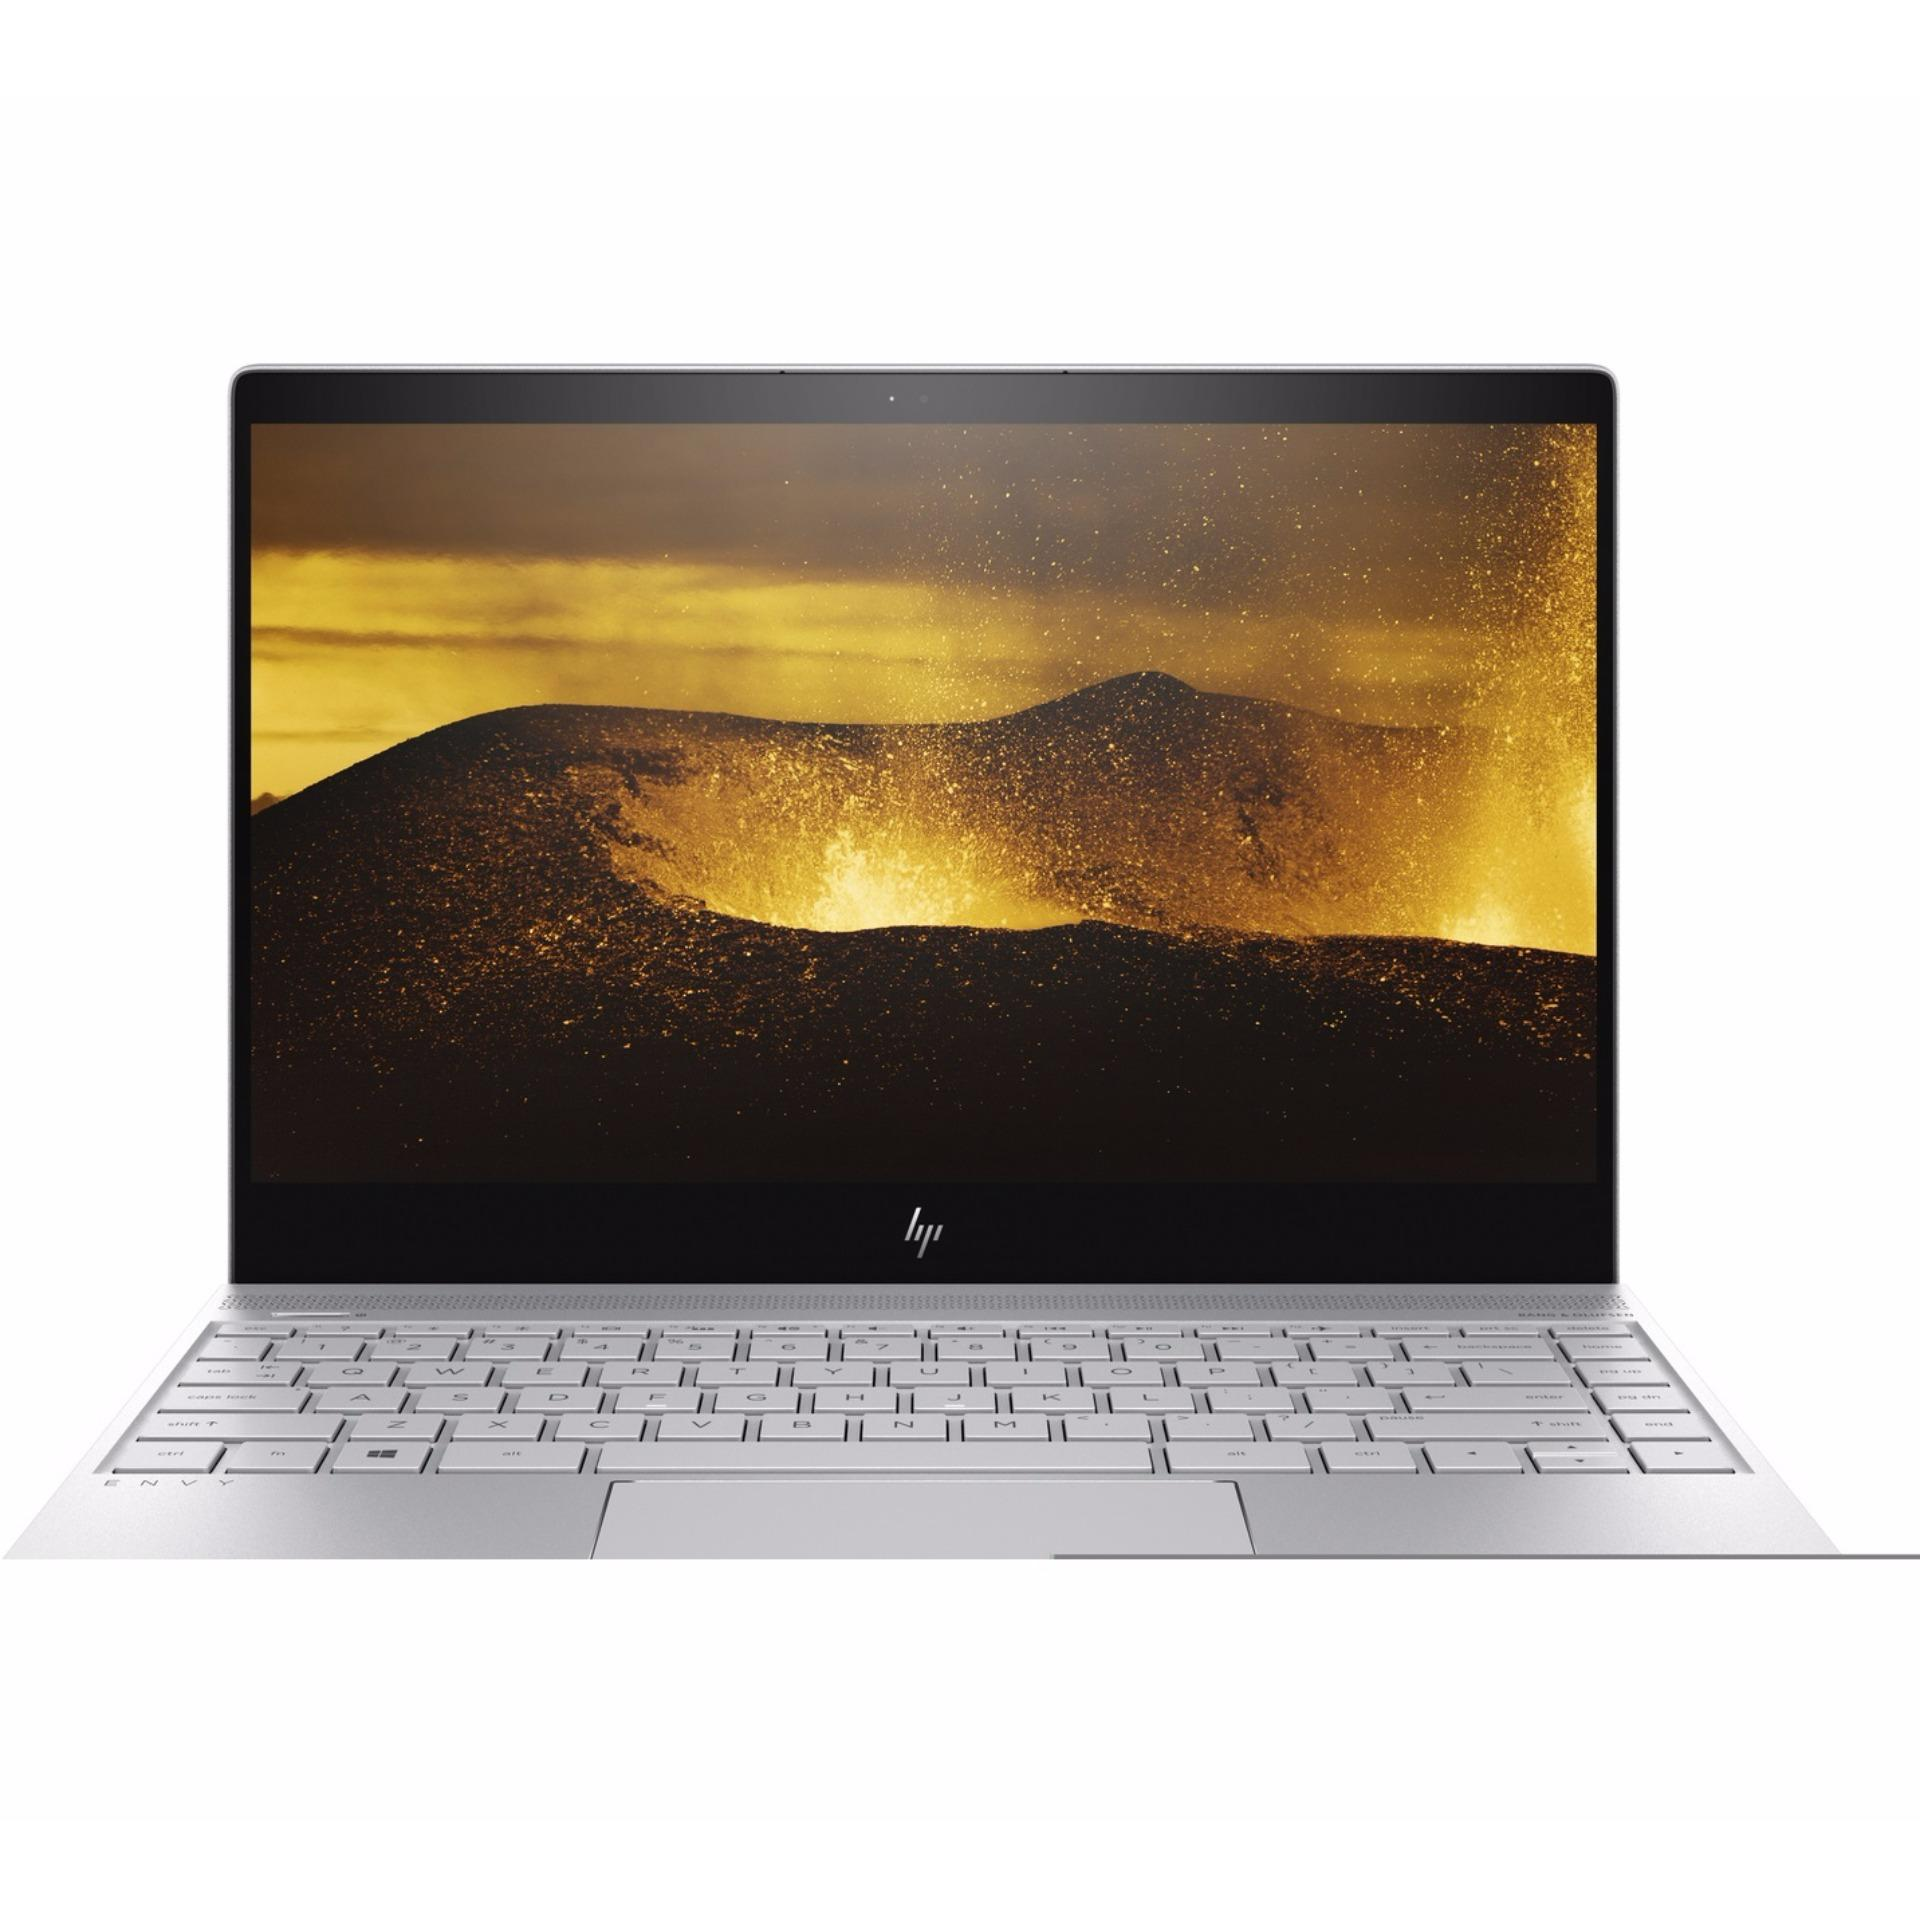 HP ENVY13 AD116TU i5-8250U Windows 10 Home 64 13.3″ diagonal FHD IPS BrightView micro-edge WLED-backlit (1920 x 1080) 8 GB (onboard); 512 GB PCIe® NVMe™ M.2 SSD Intel® UHD Graphics 620